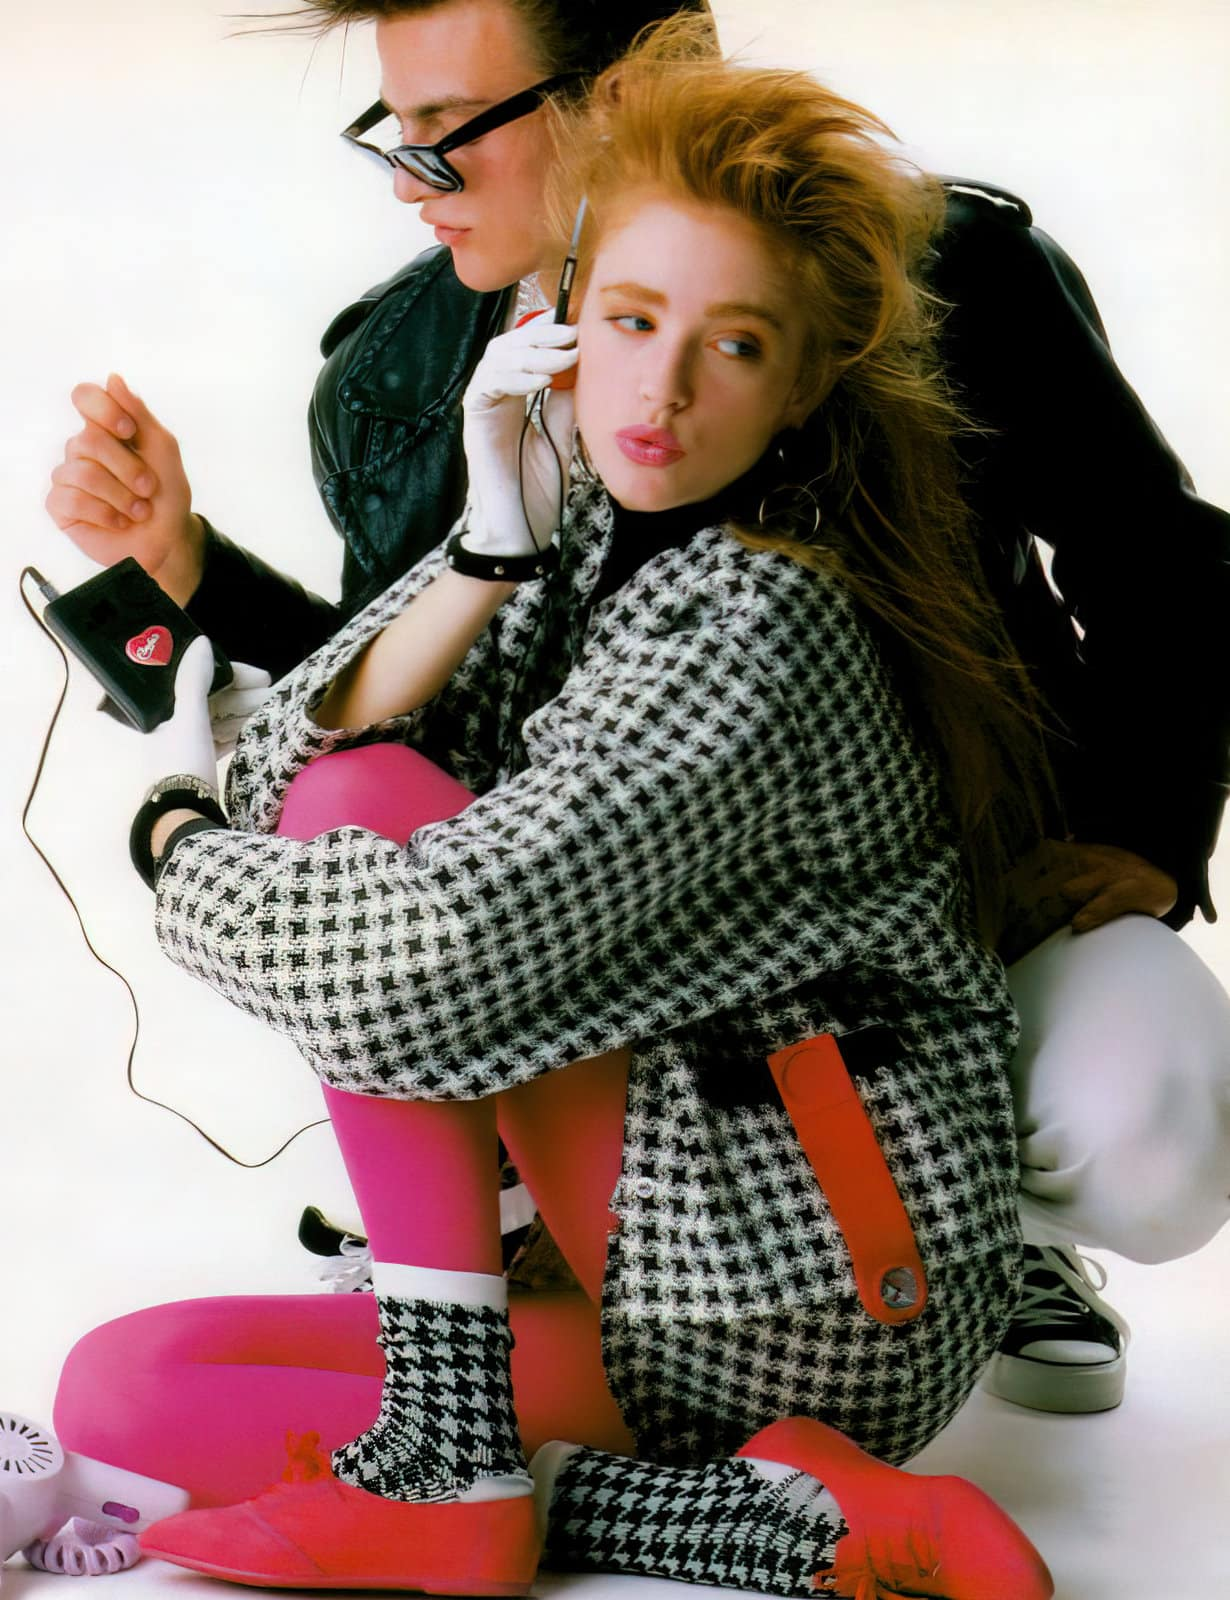 Vintage '80s tech and fashions